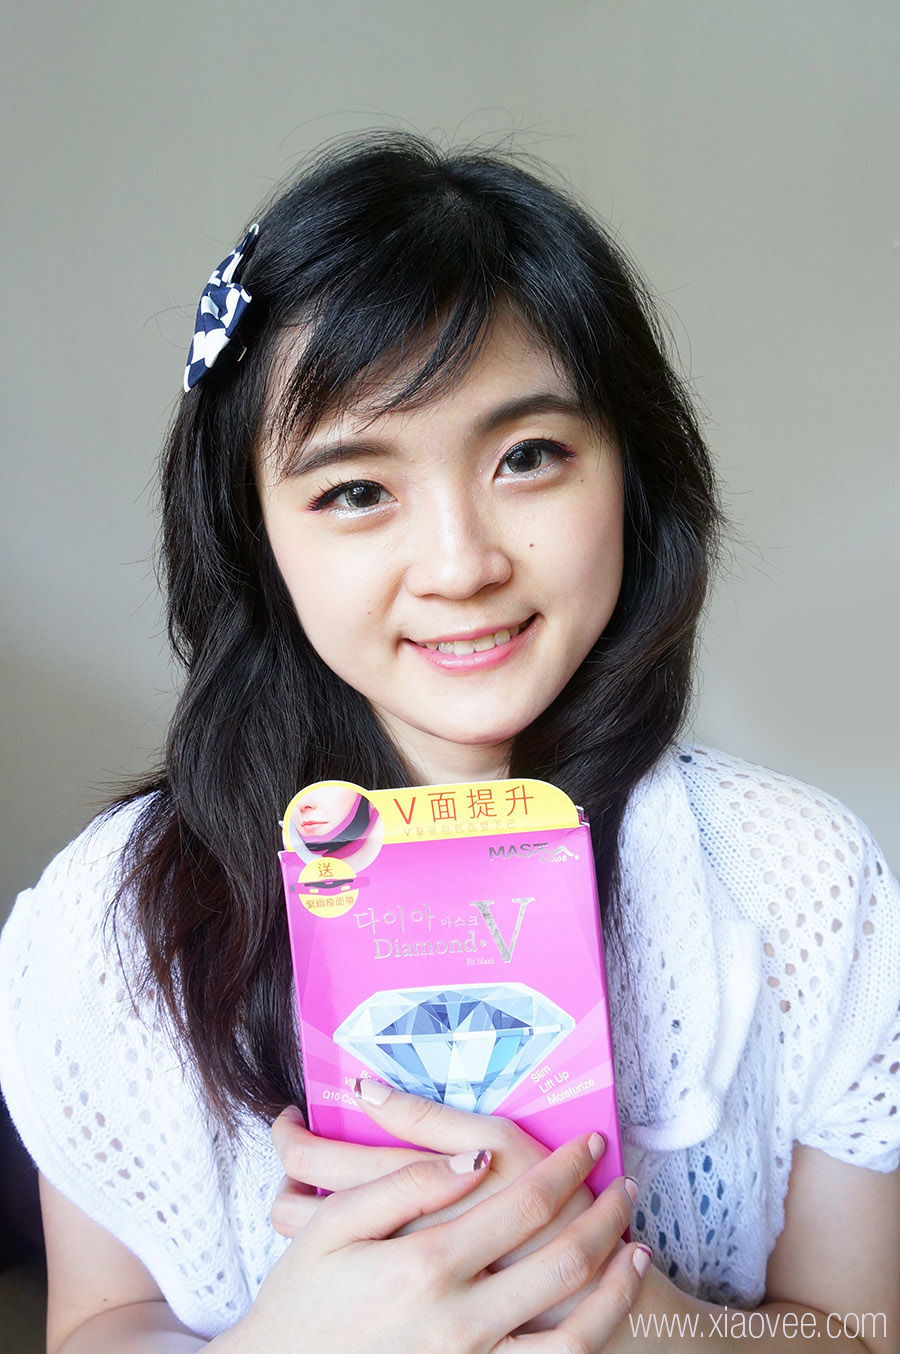 V-Chin without surgery, small chin without surgery, Mask House Diamond V Fit Mask, Korean slimming mask review